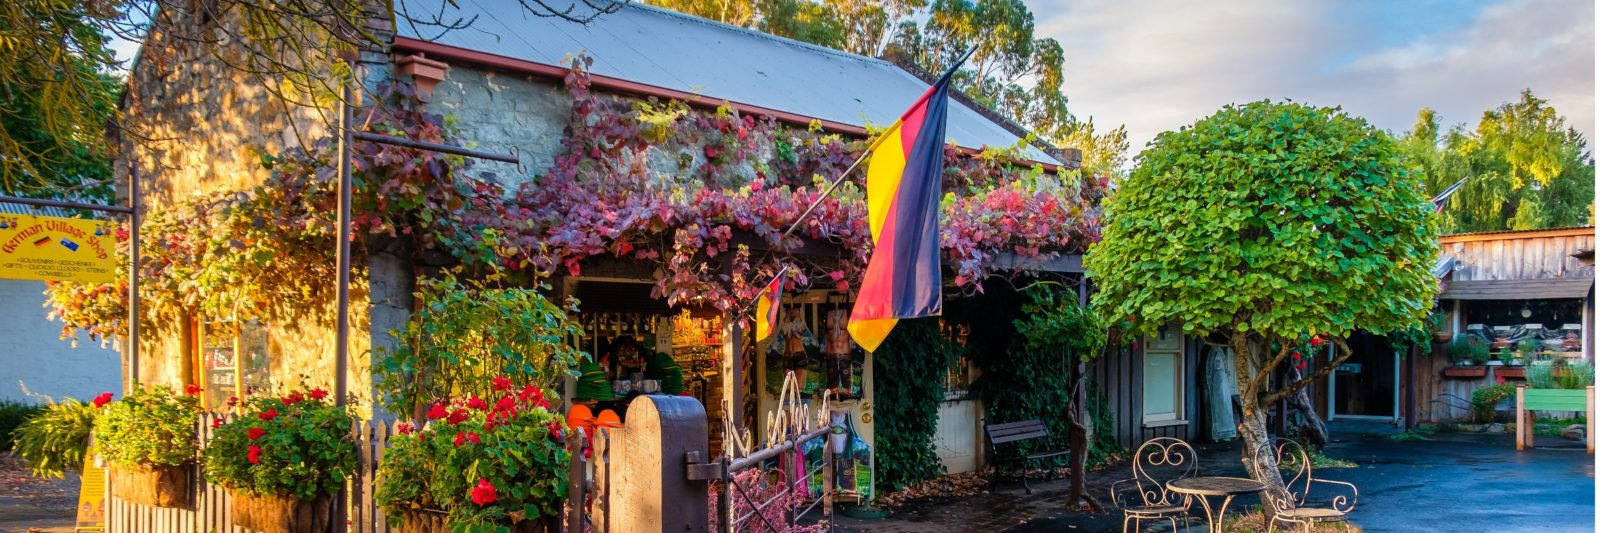 The German Village Shop located in Hahndorf, South Australia. A must see for visitors of Adelaide